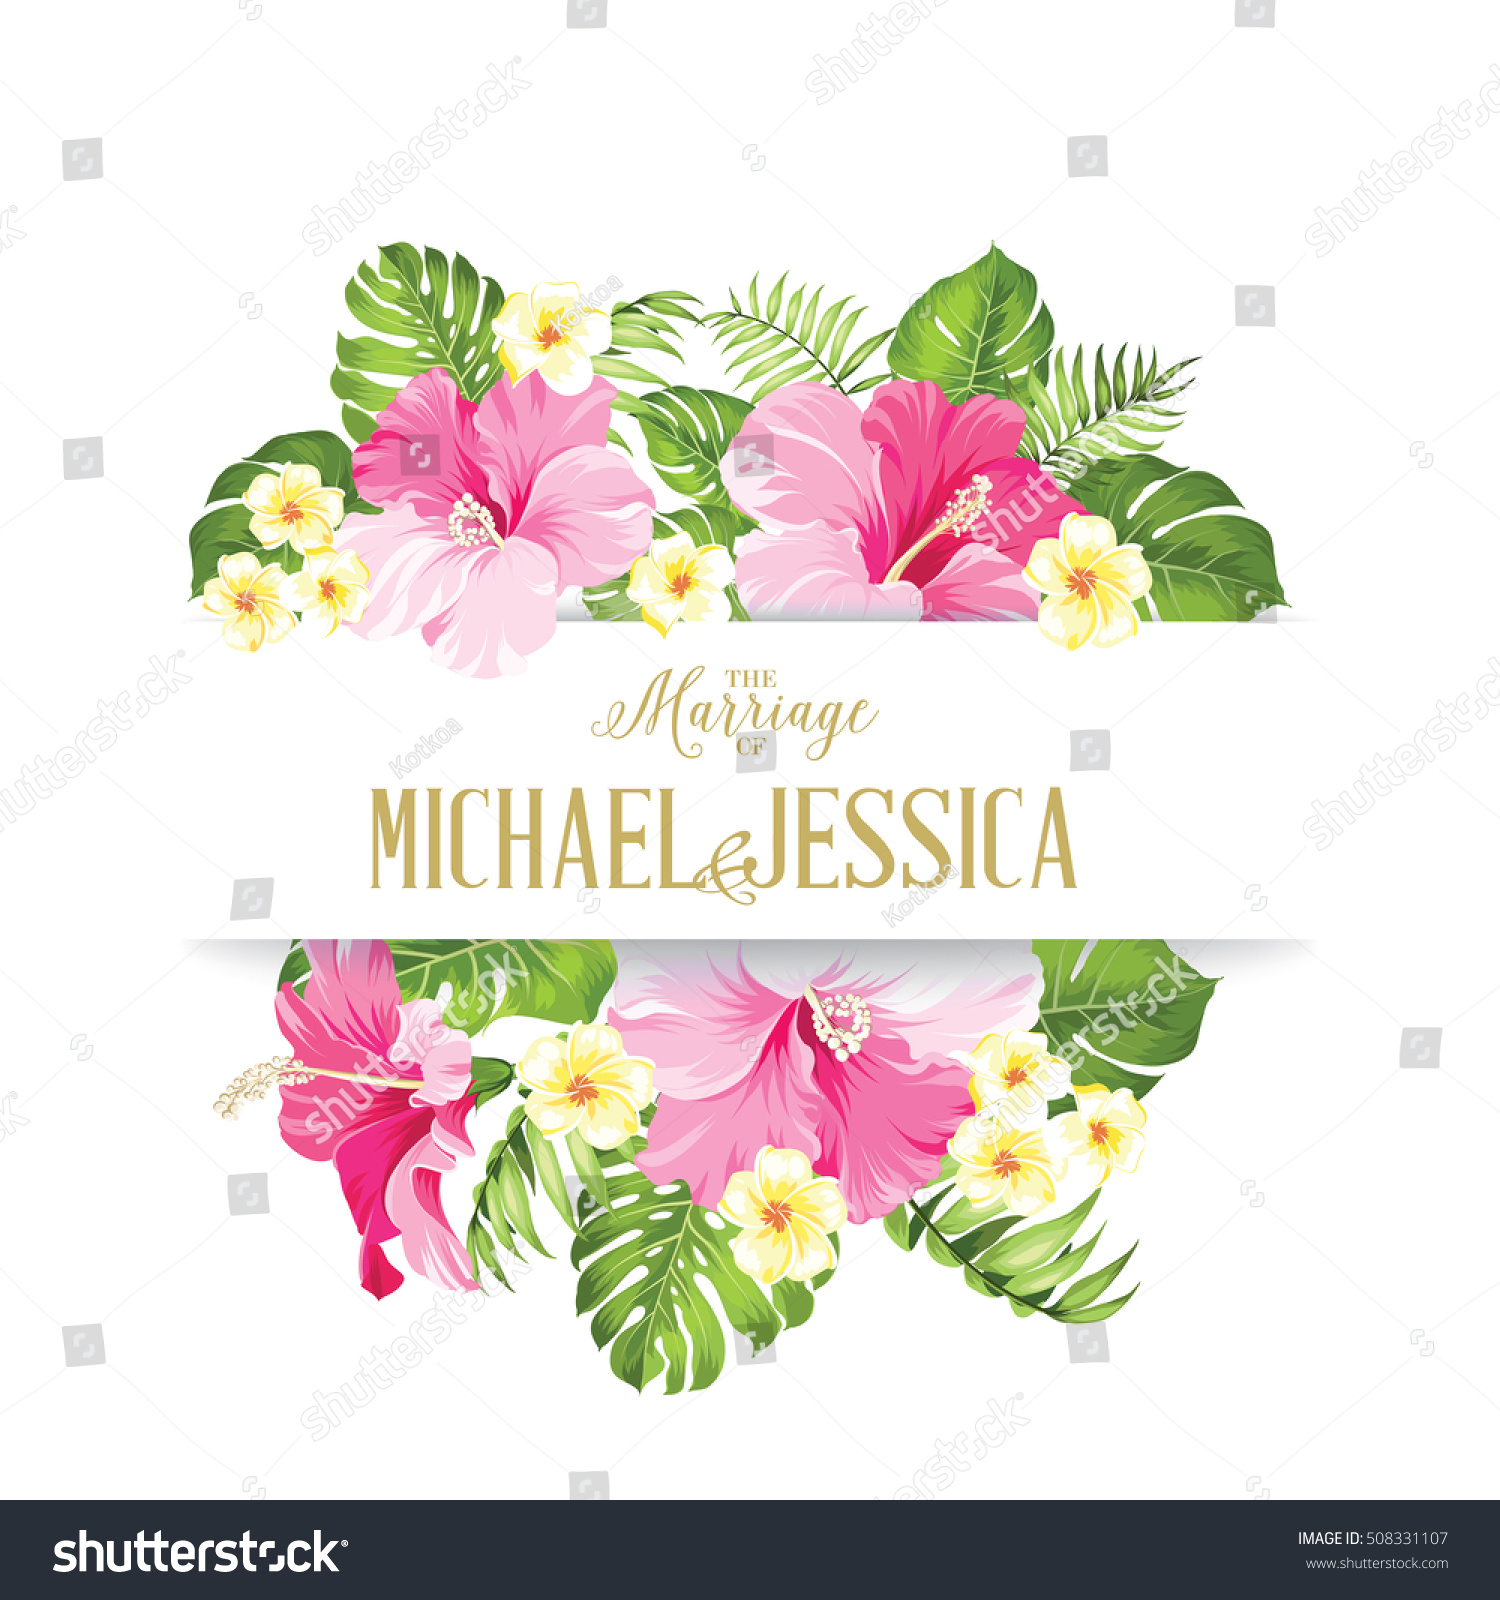 Marriage card wedding invitation card template imagem vetorial de marriage card wedding invitation card template imagem vetorial de banco 508331107 shutterstock stopboris